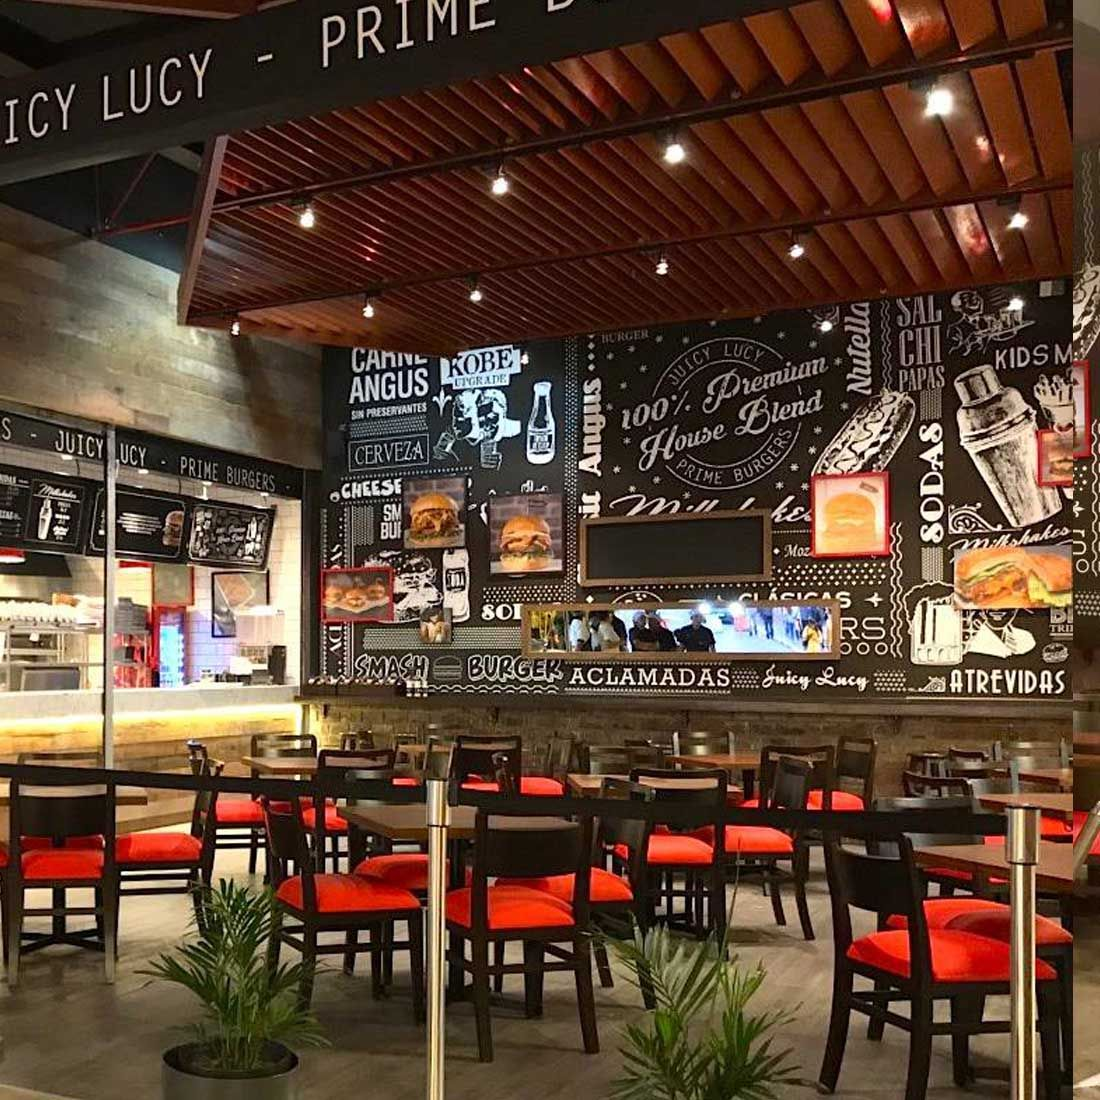 JUICY LUCY - JOCKEY PLAZA Restaurant - and Peruvian Food MEAT AND GRILL - SANTIAGO DE SURCO - MESA 24/7 Guide | LIMA - Peru